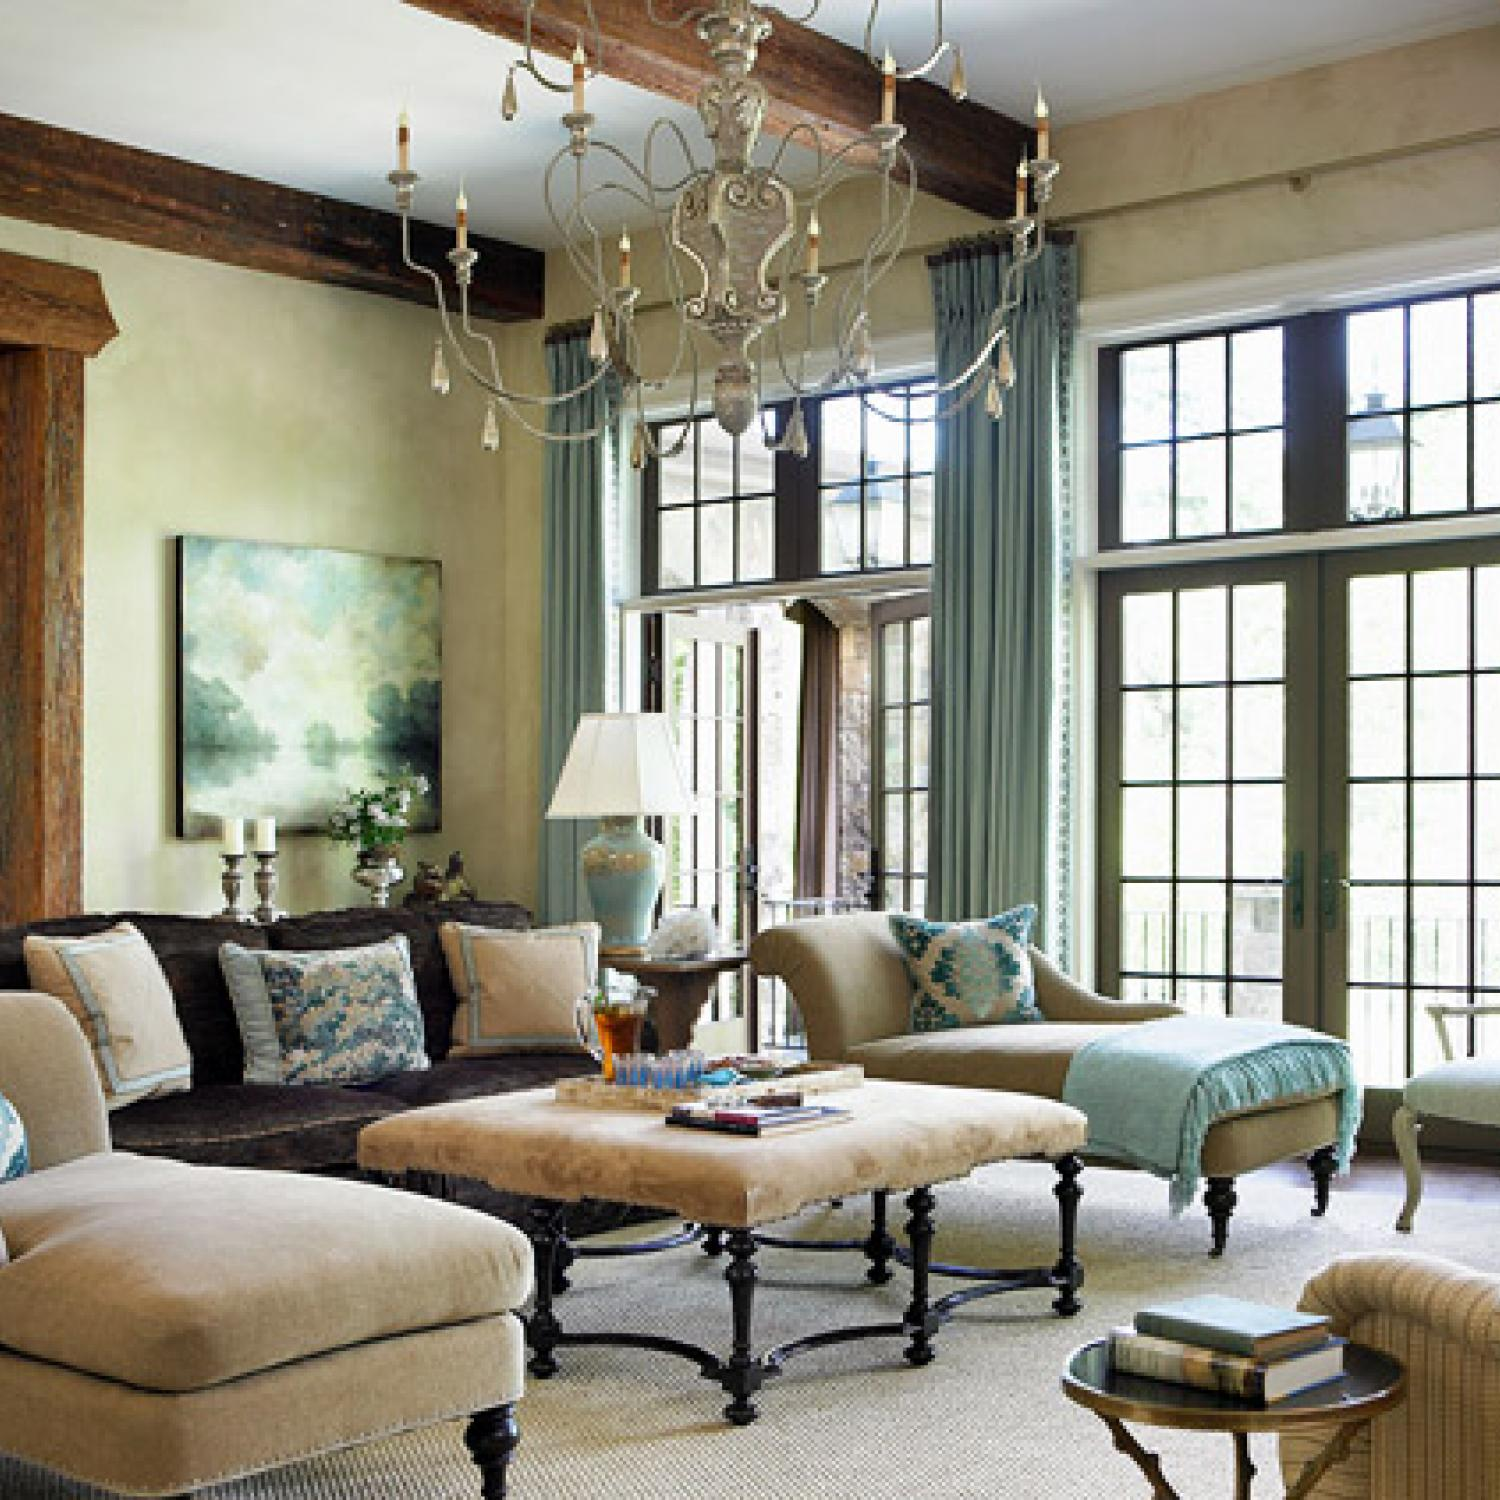 Classical Home Design Idea: Elegant And Family-Friendly Atlanta Home